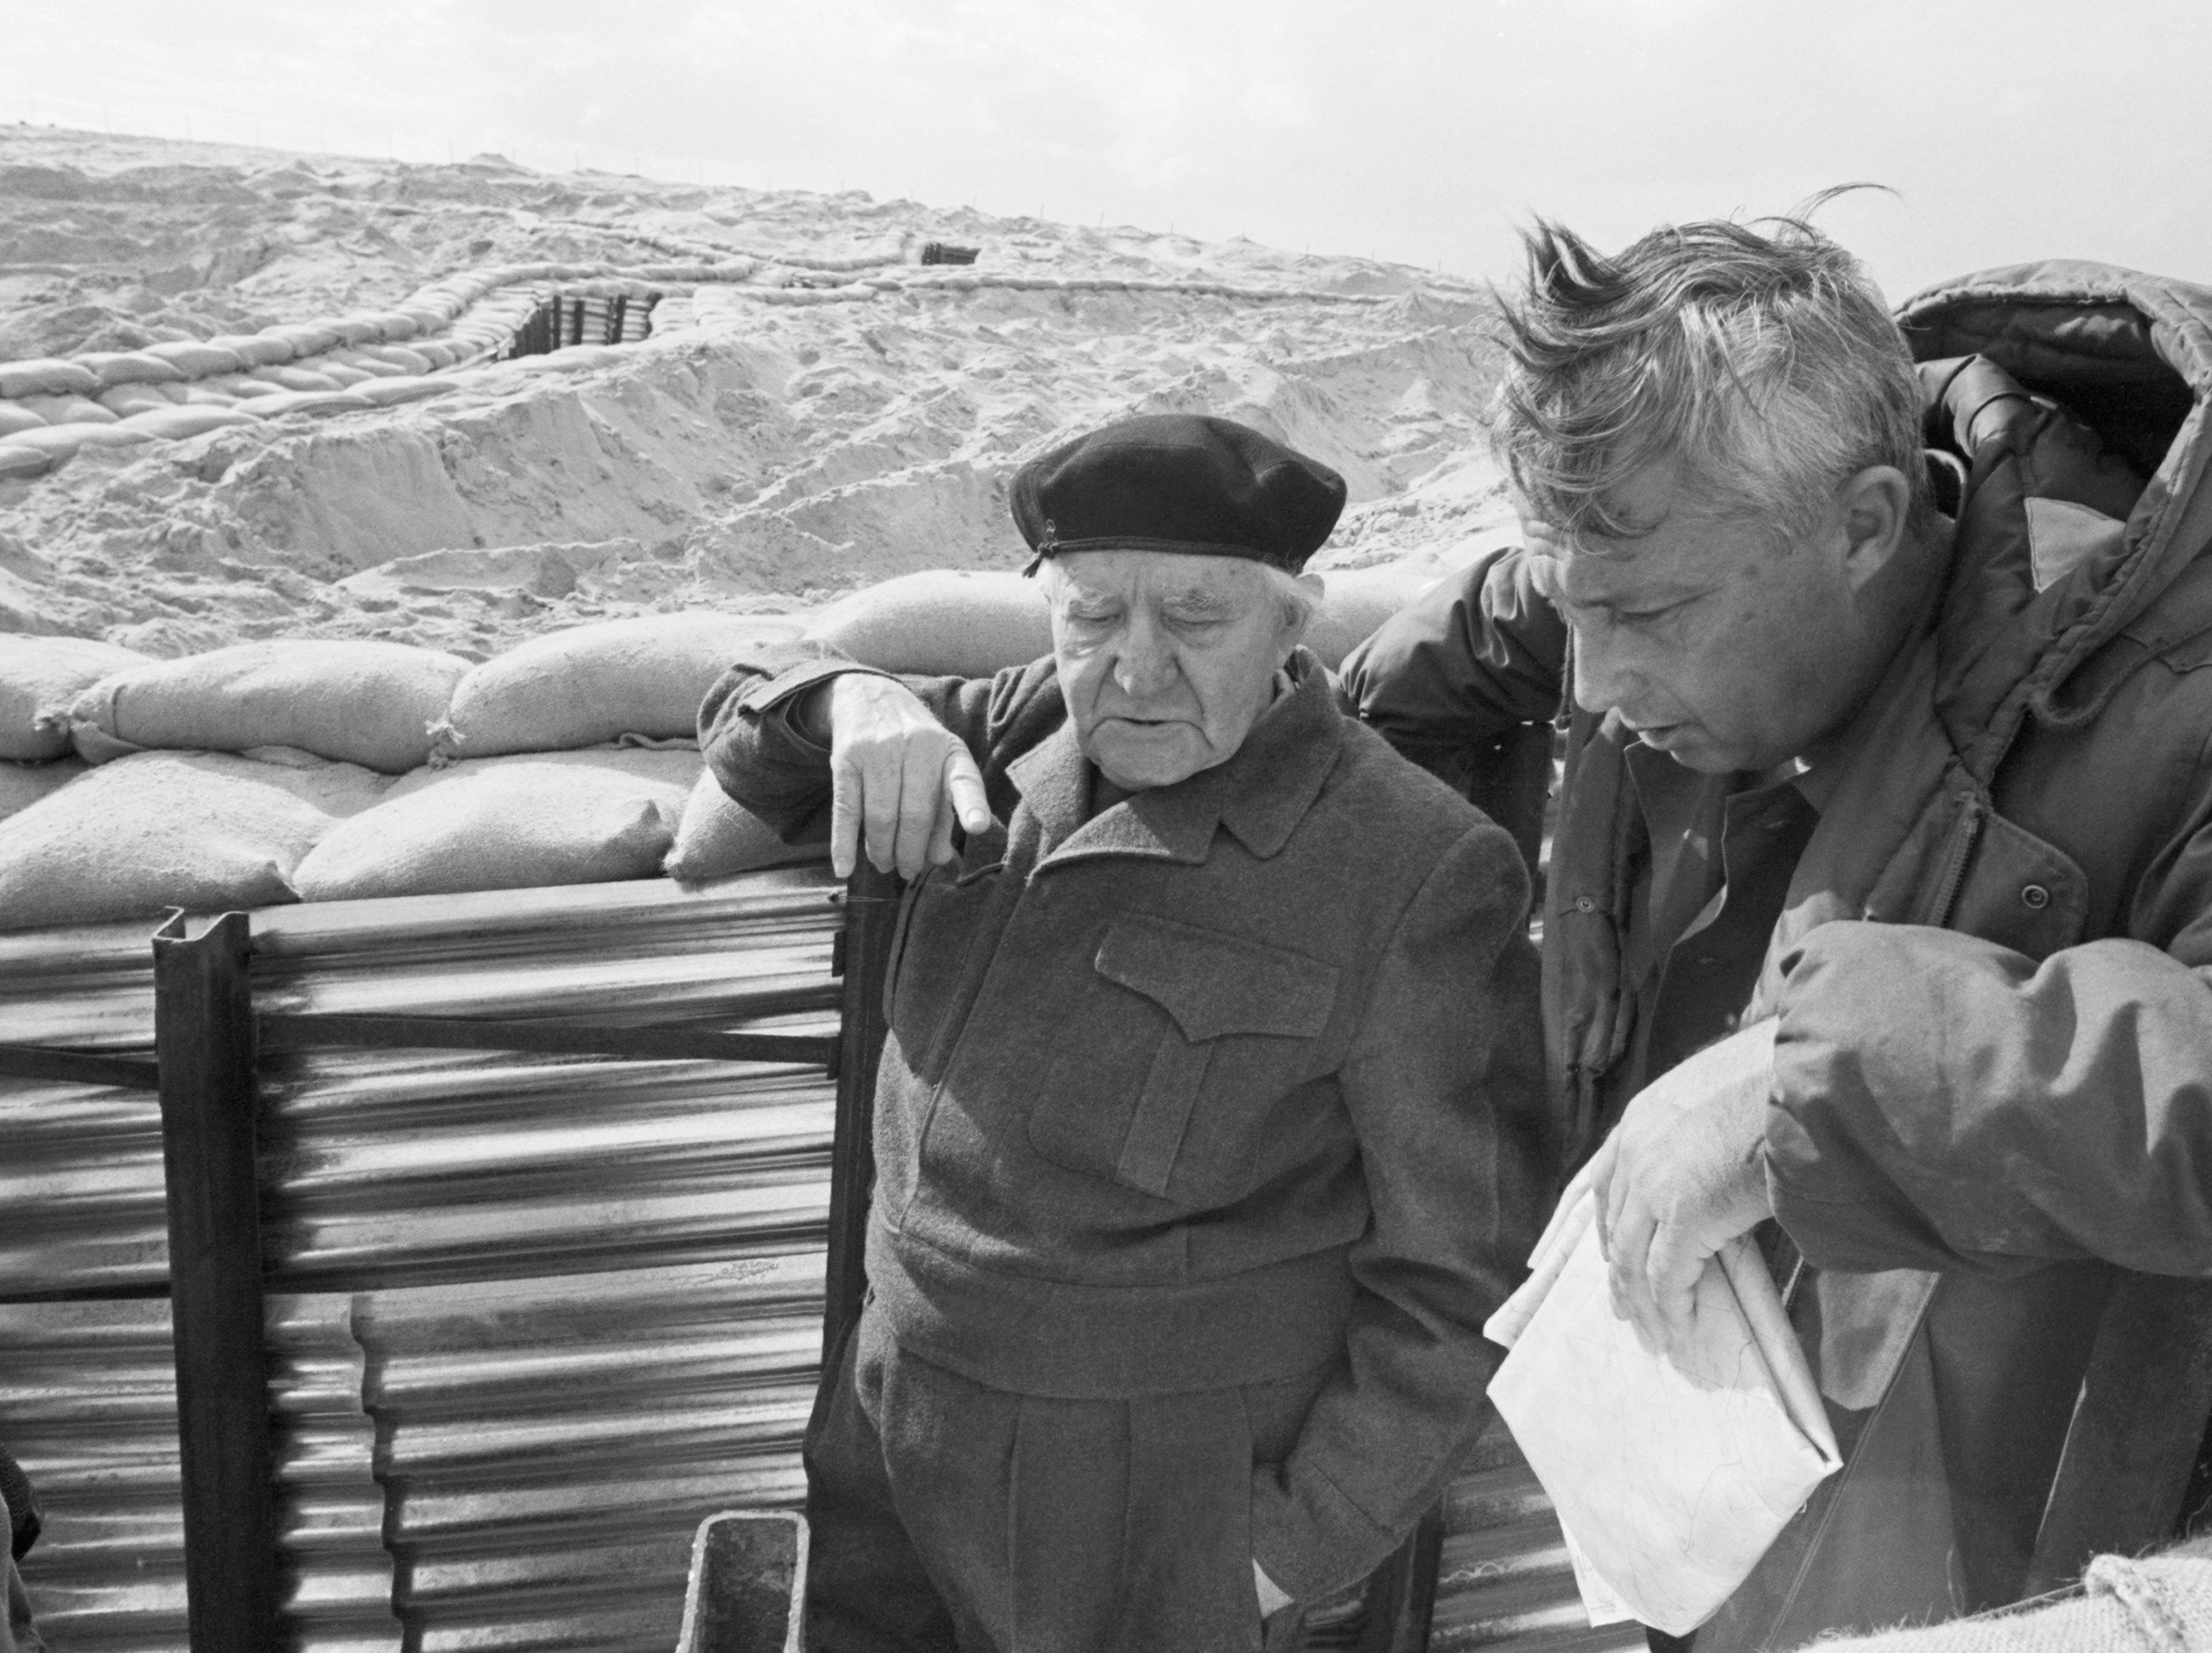 David Ben-Gurion, one of the architects of the Israeli state, with Ariel Sharon on the Israeli front lines at the Suez Canal during the War of Attrition, 1971.